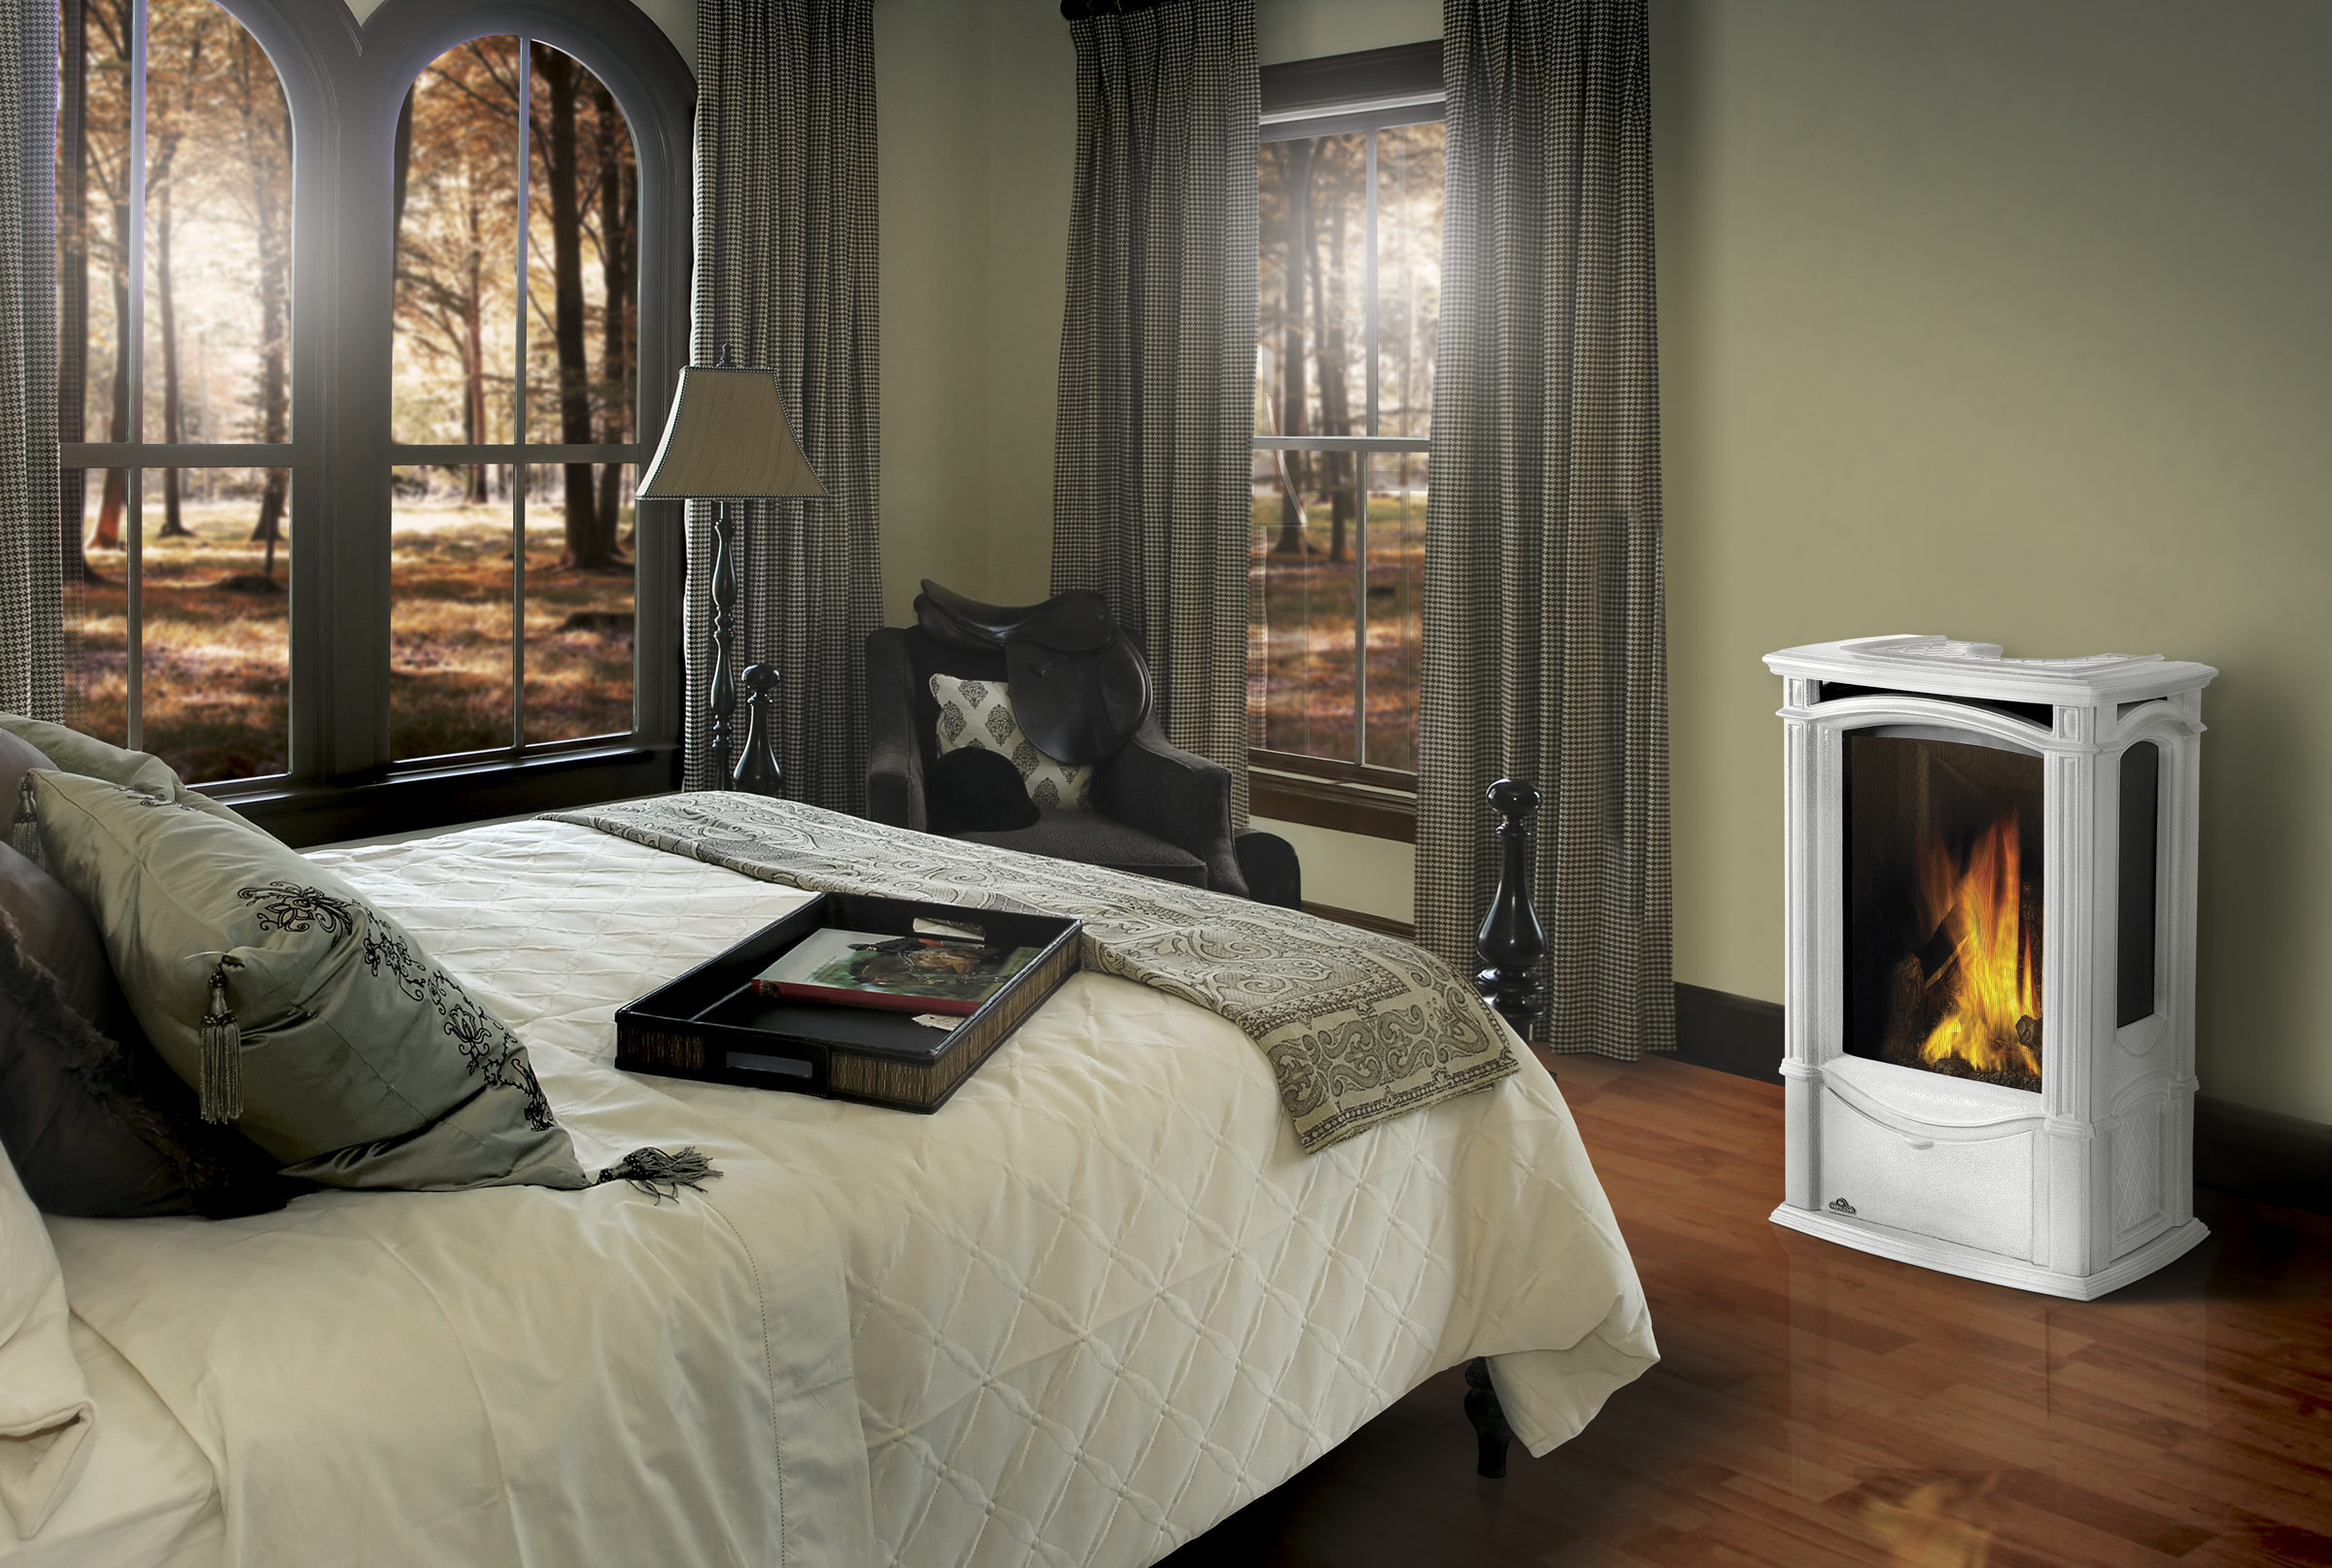 castlemore-gds26-sb-bedroom-winterfrost-fireplaces-print